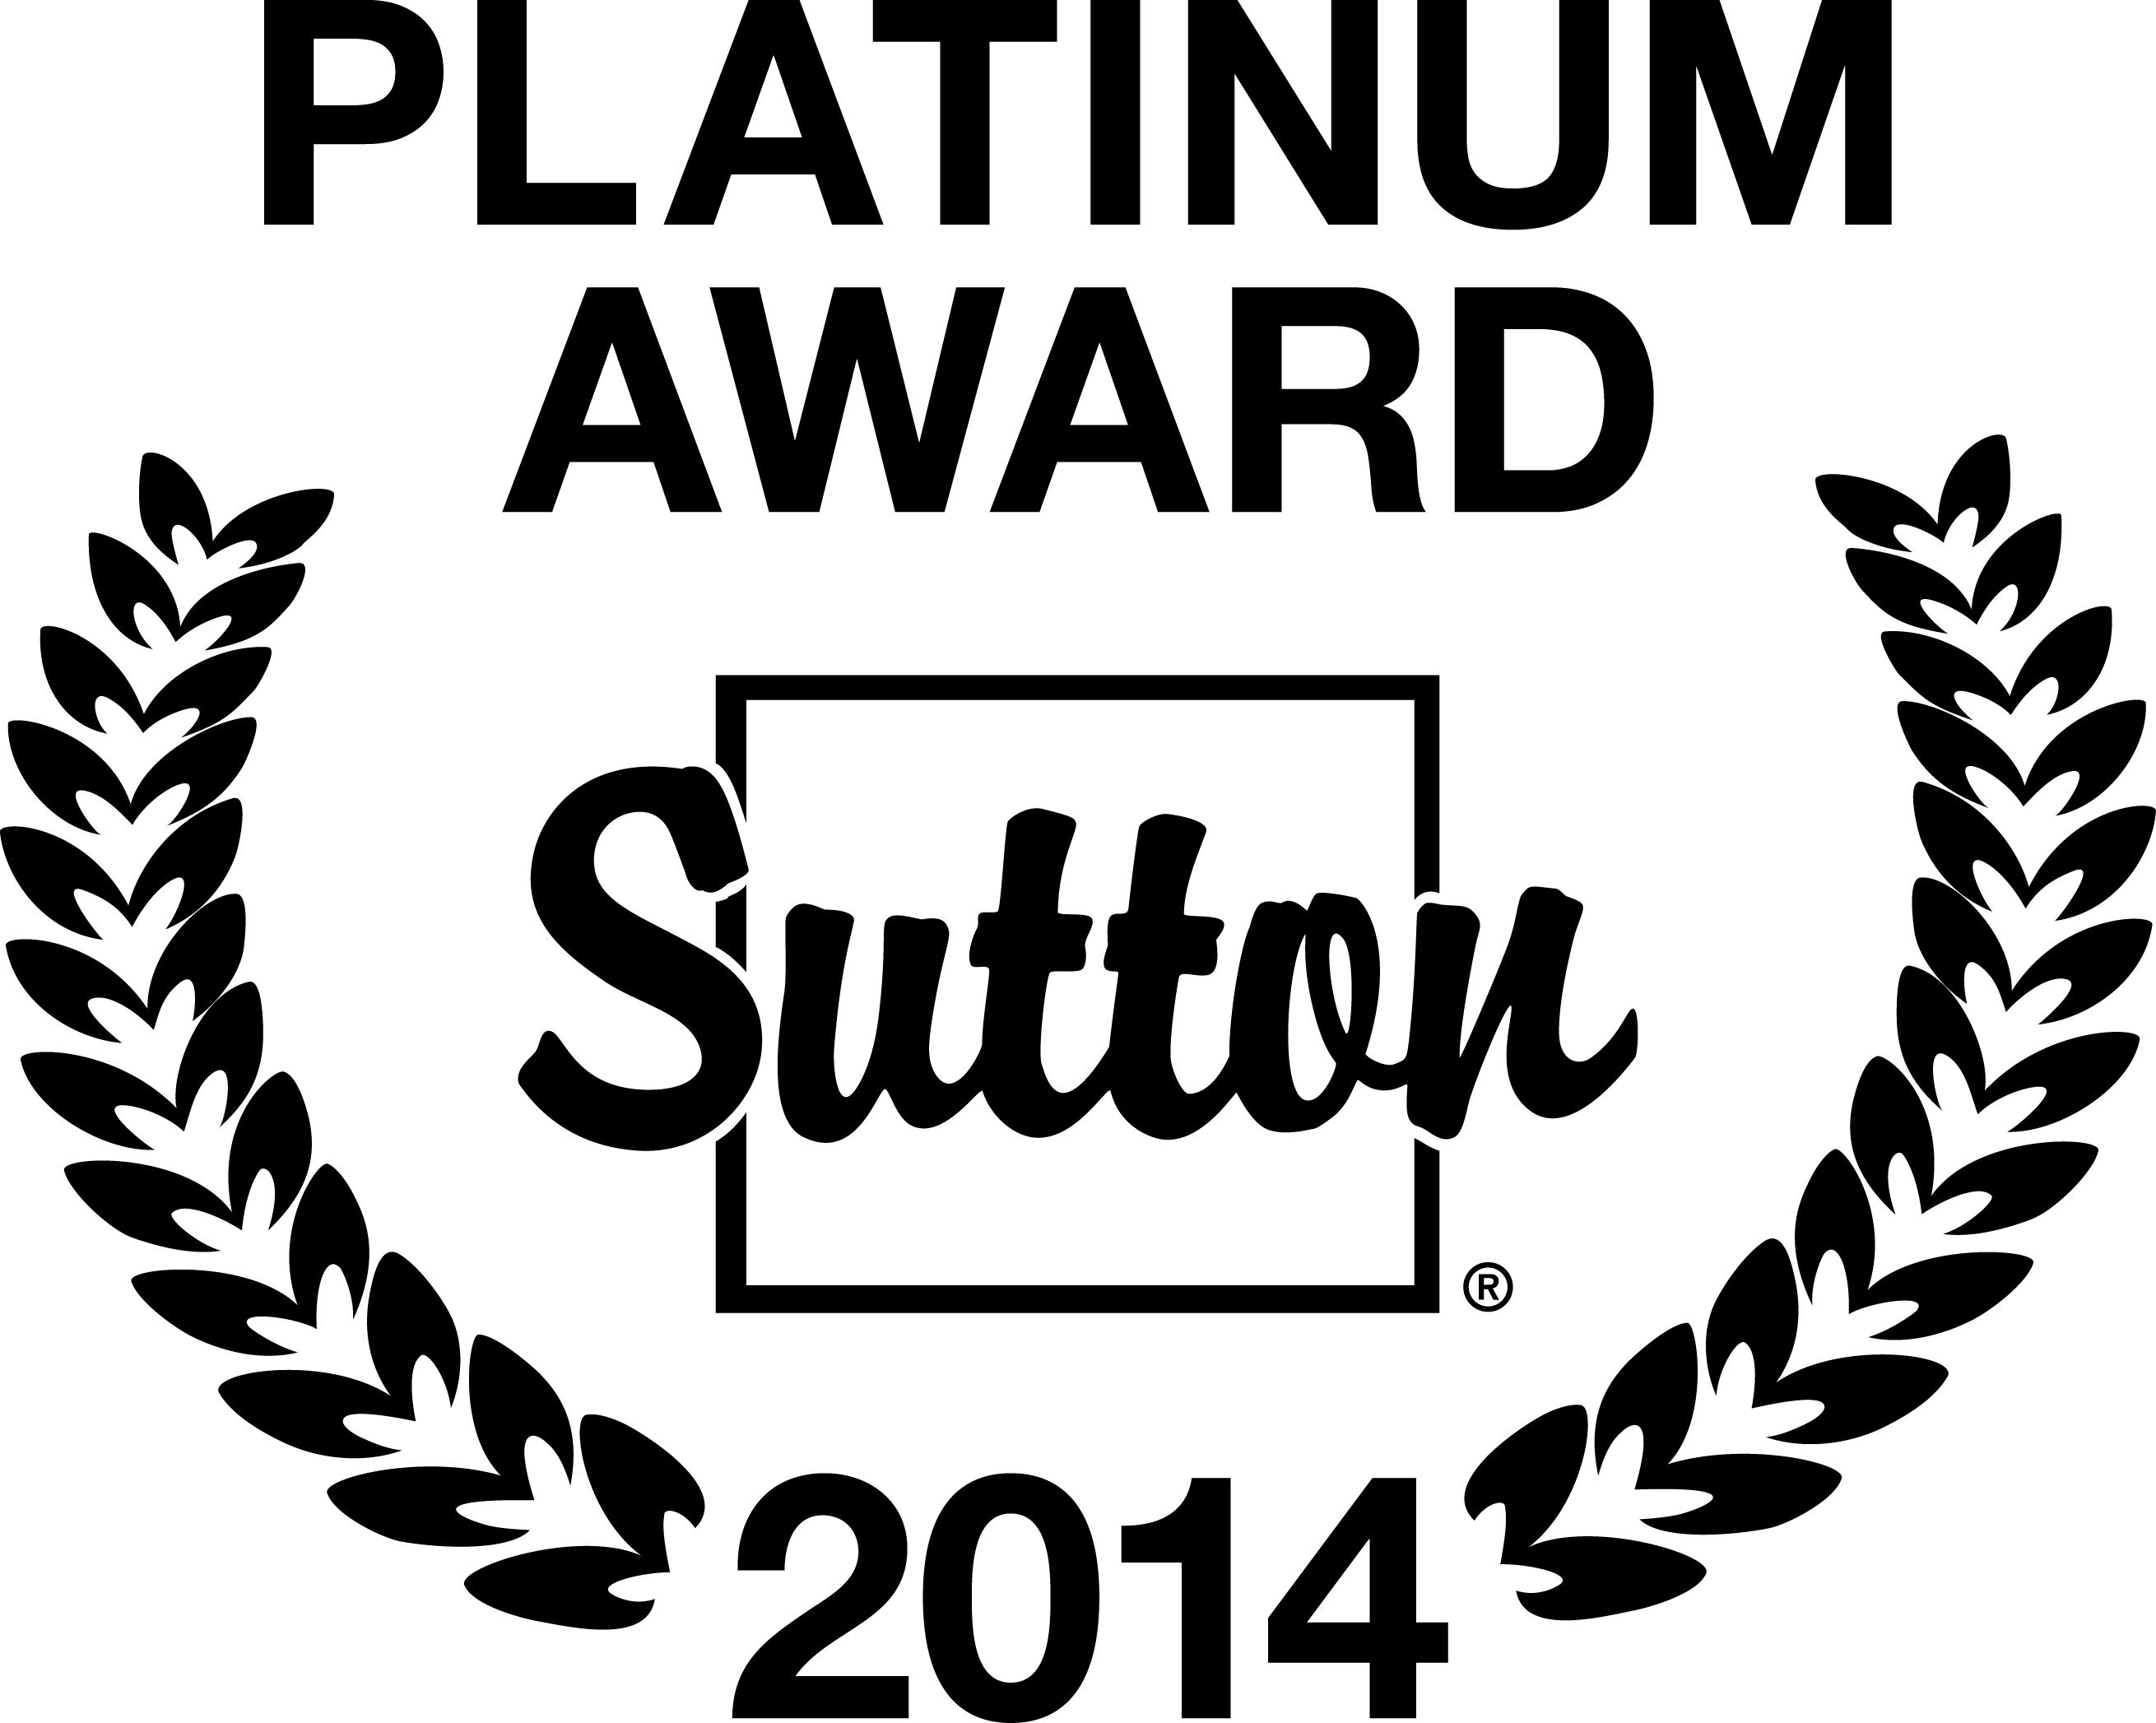 Platinum Award 2014